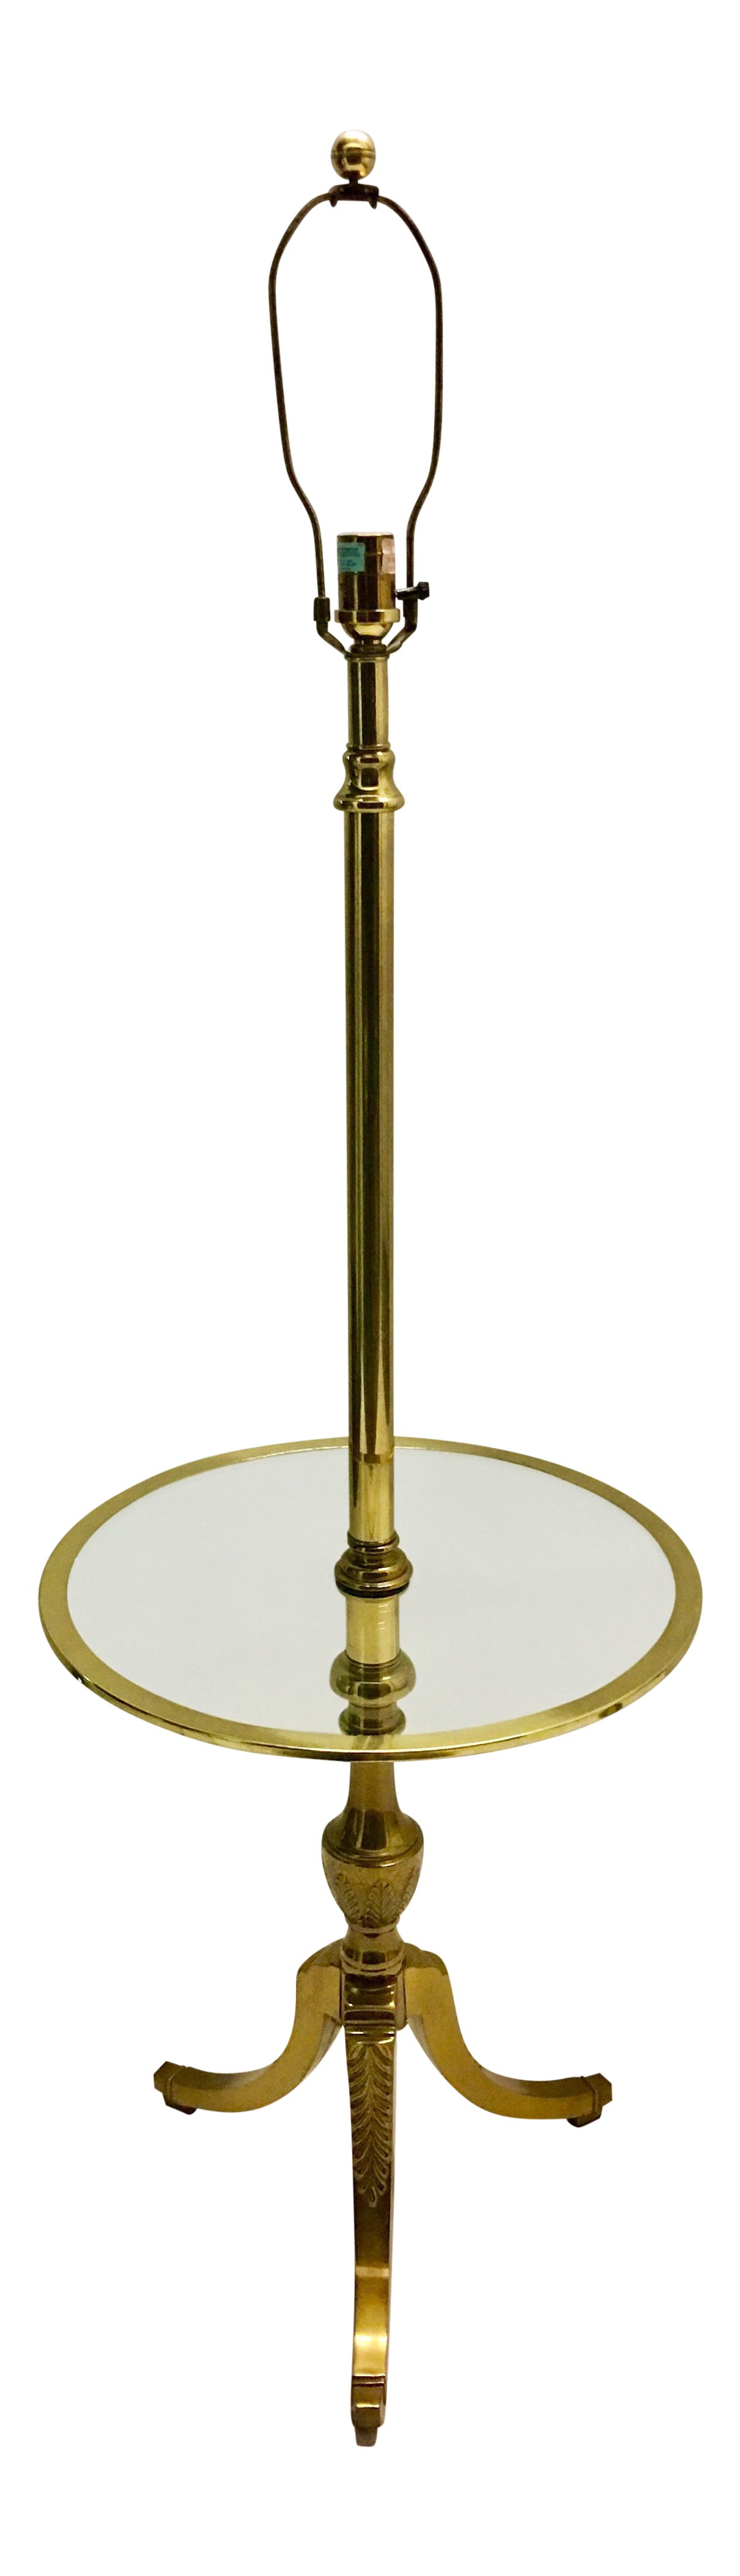 Vintage Brass Floor Lamp With Table